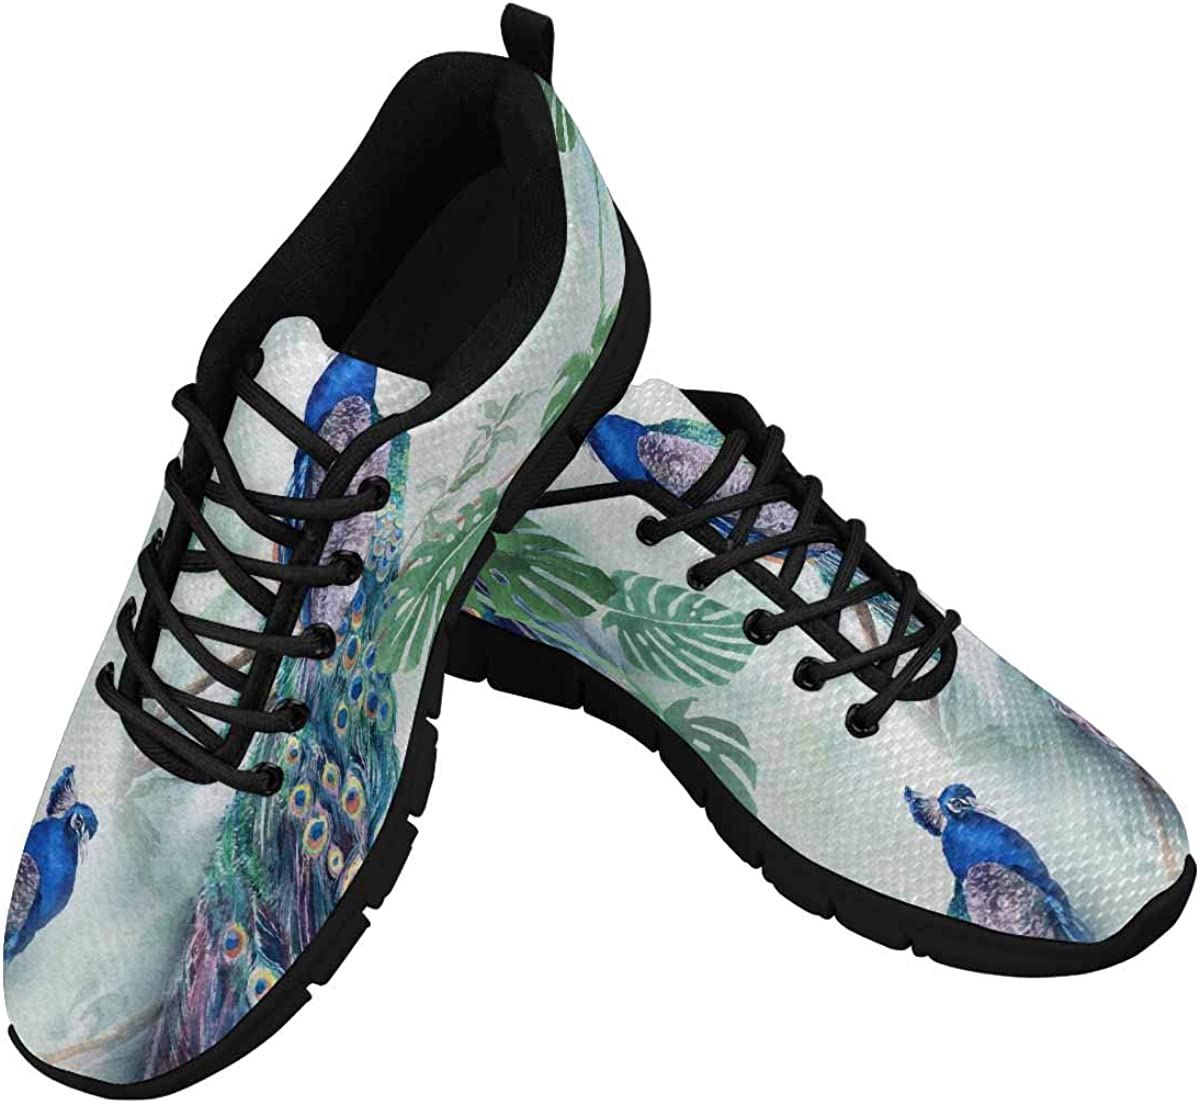 InterestPrint Peacock with Palm Tree Leaves Painting Women's Athletic Walking Shoes Breathe Comfort Mesh